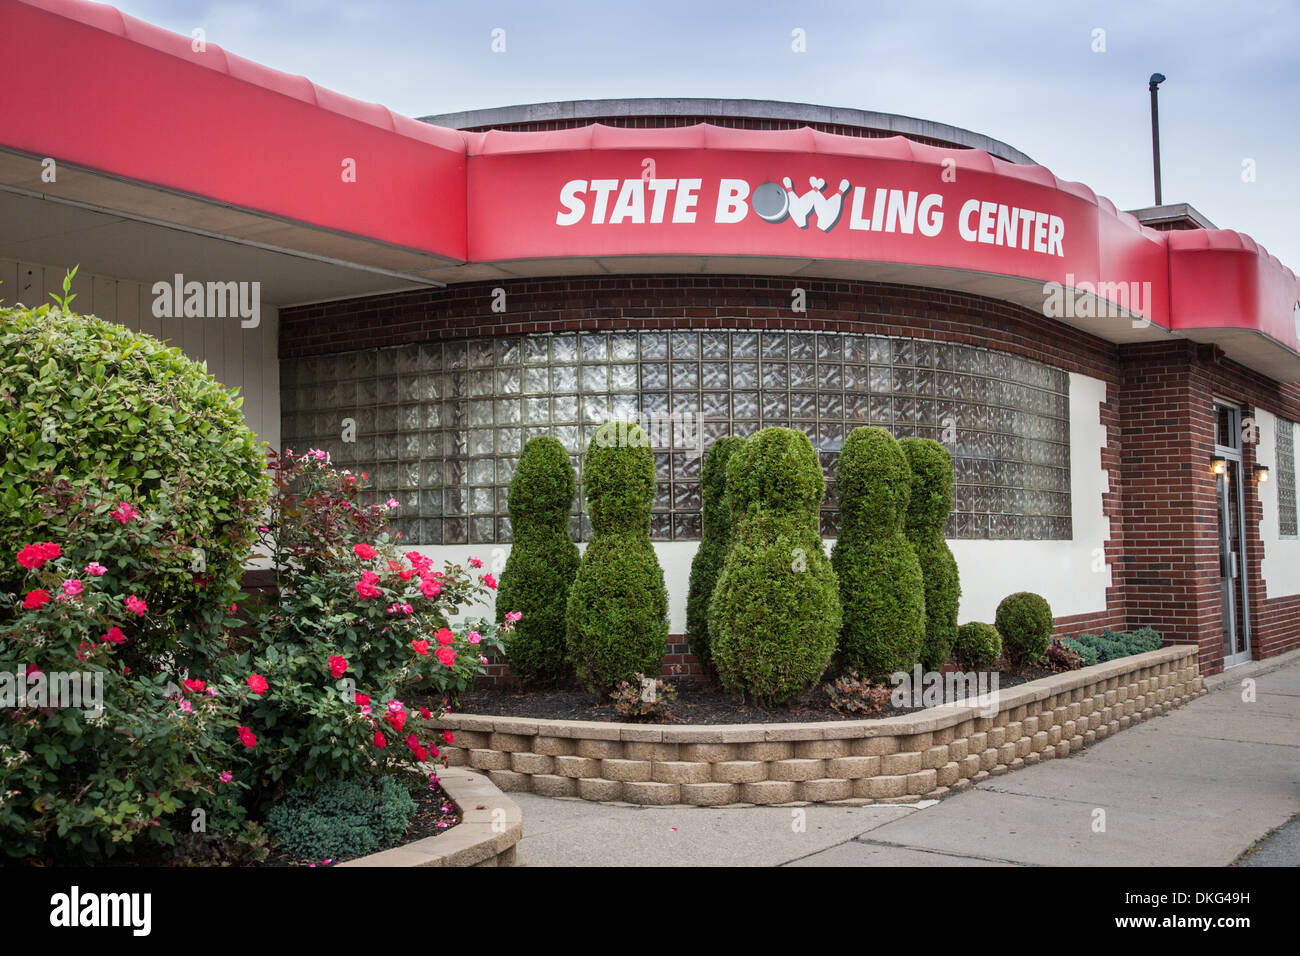 Bowling alley with shrubs trimmed in the shape of bowling pins. Ilion, New York State. - Stock Image